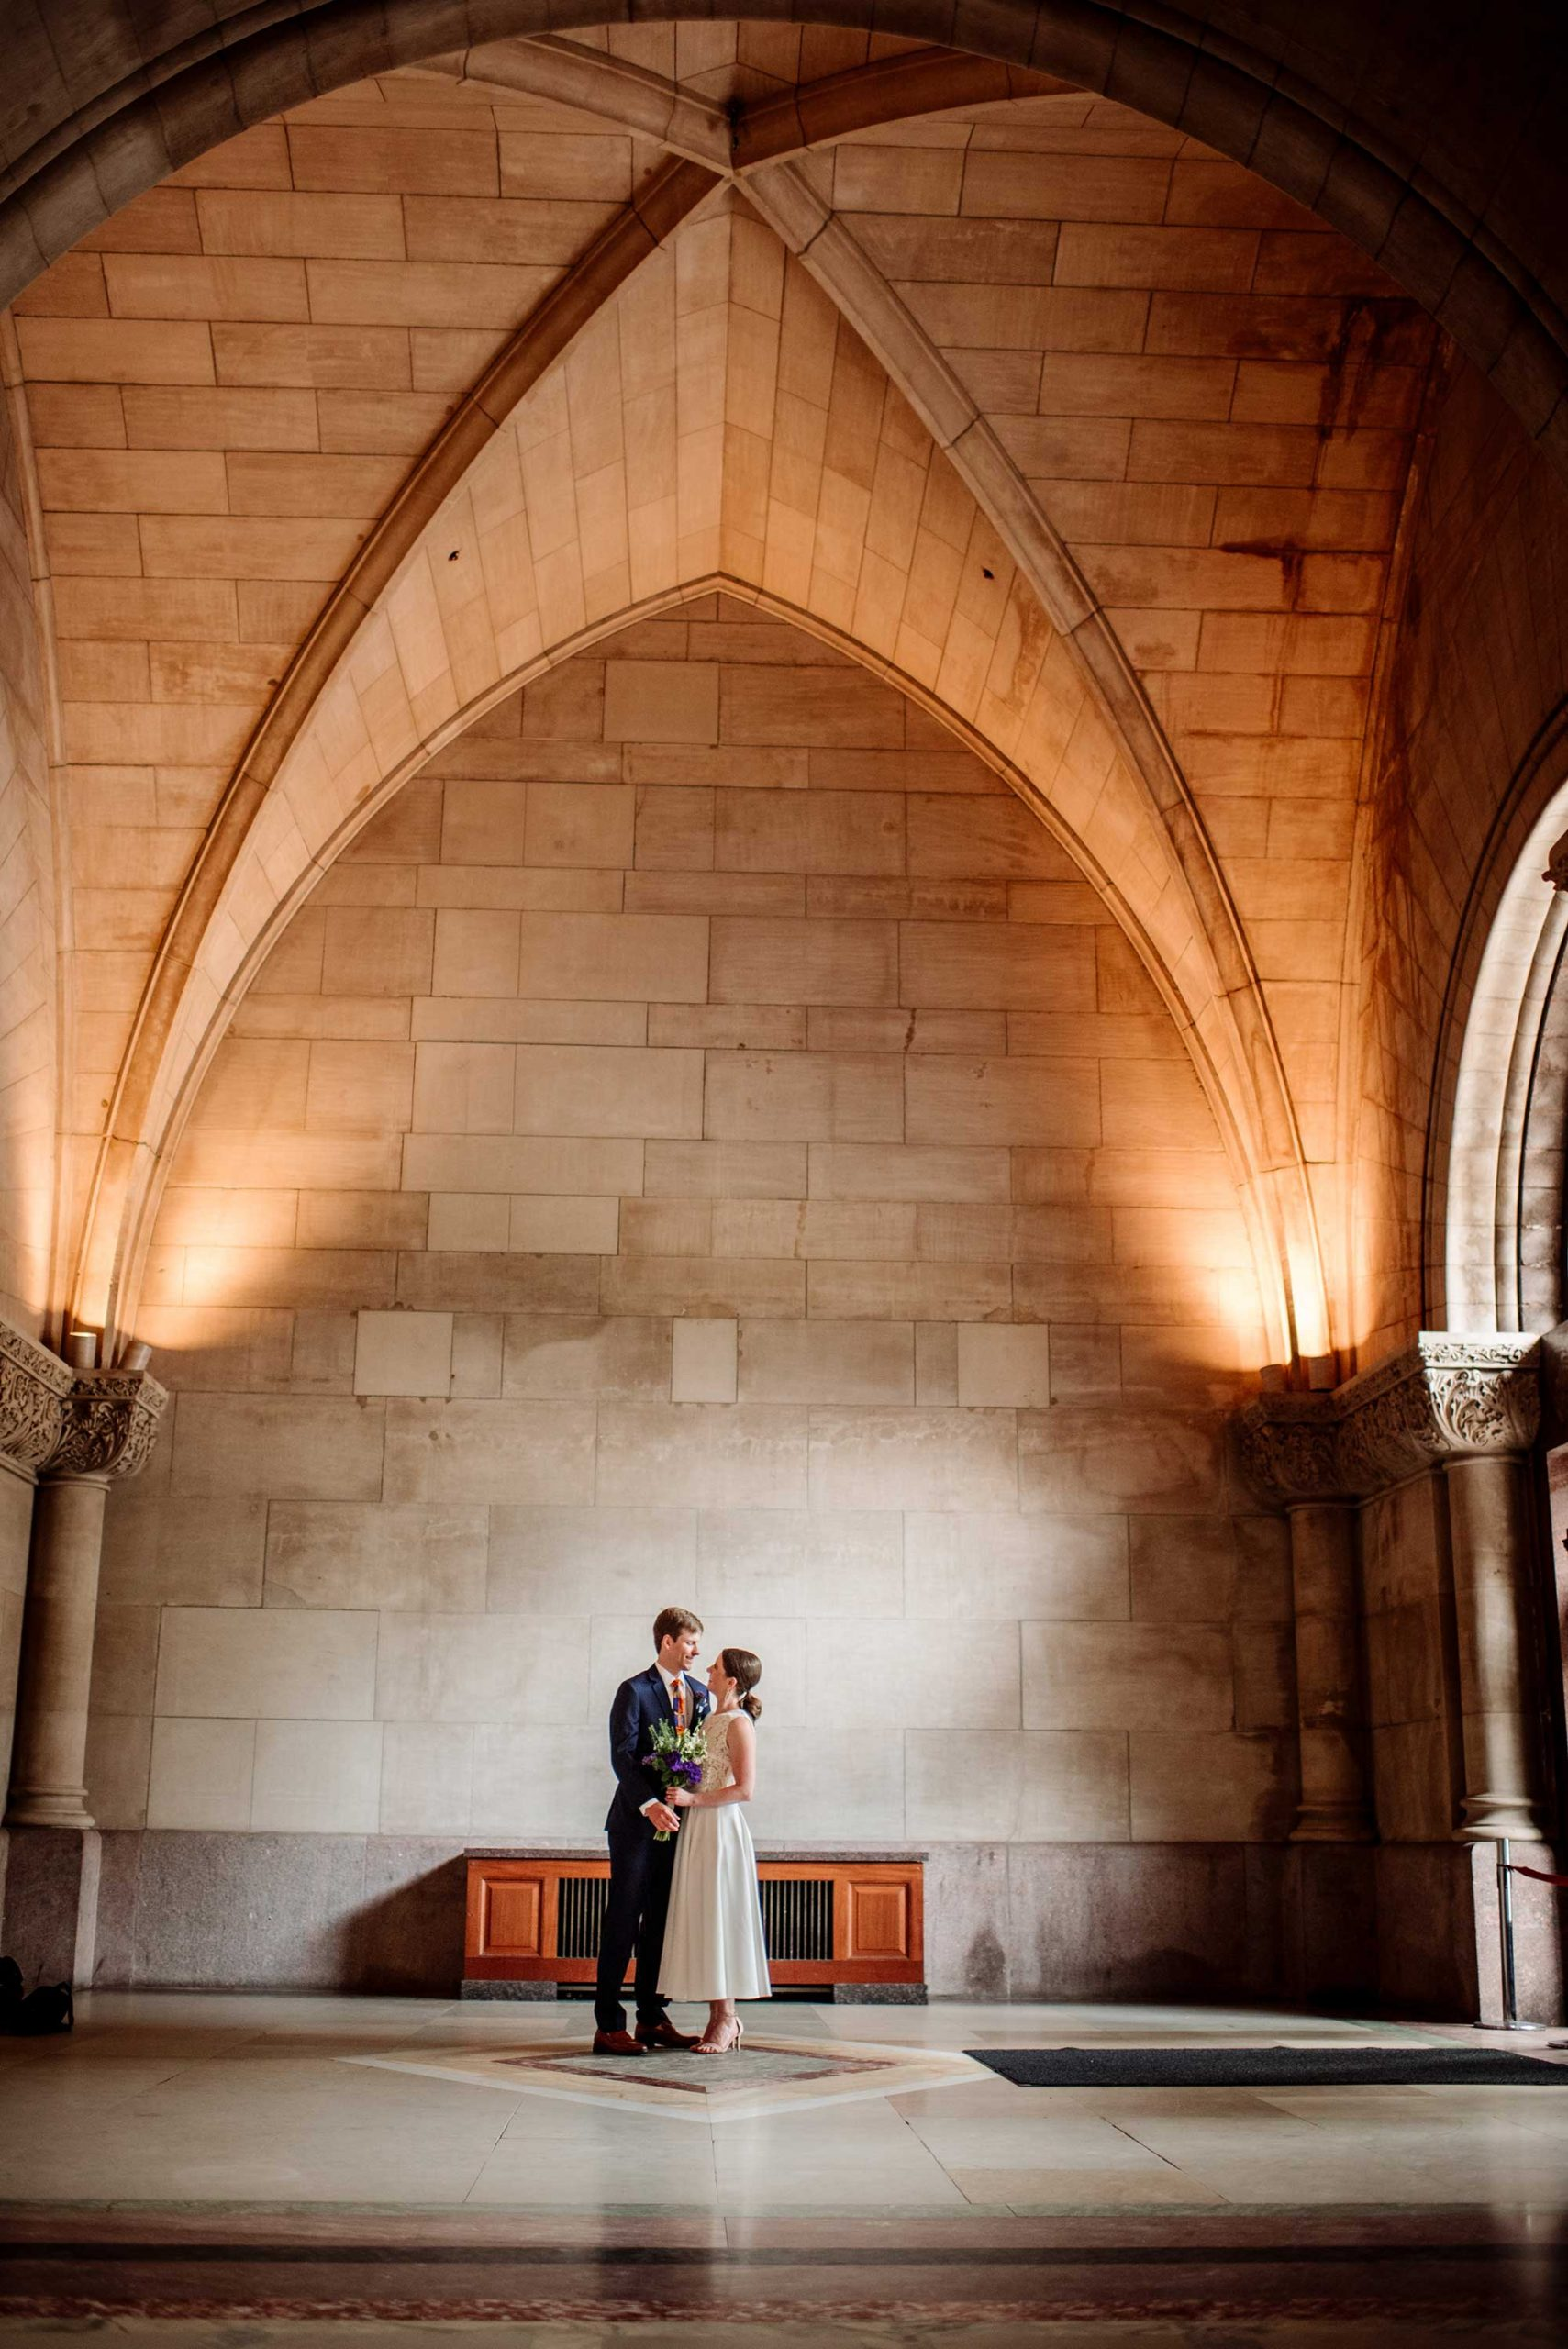 archetecture inside Minneapolis city hall wedding